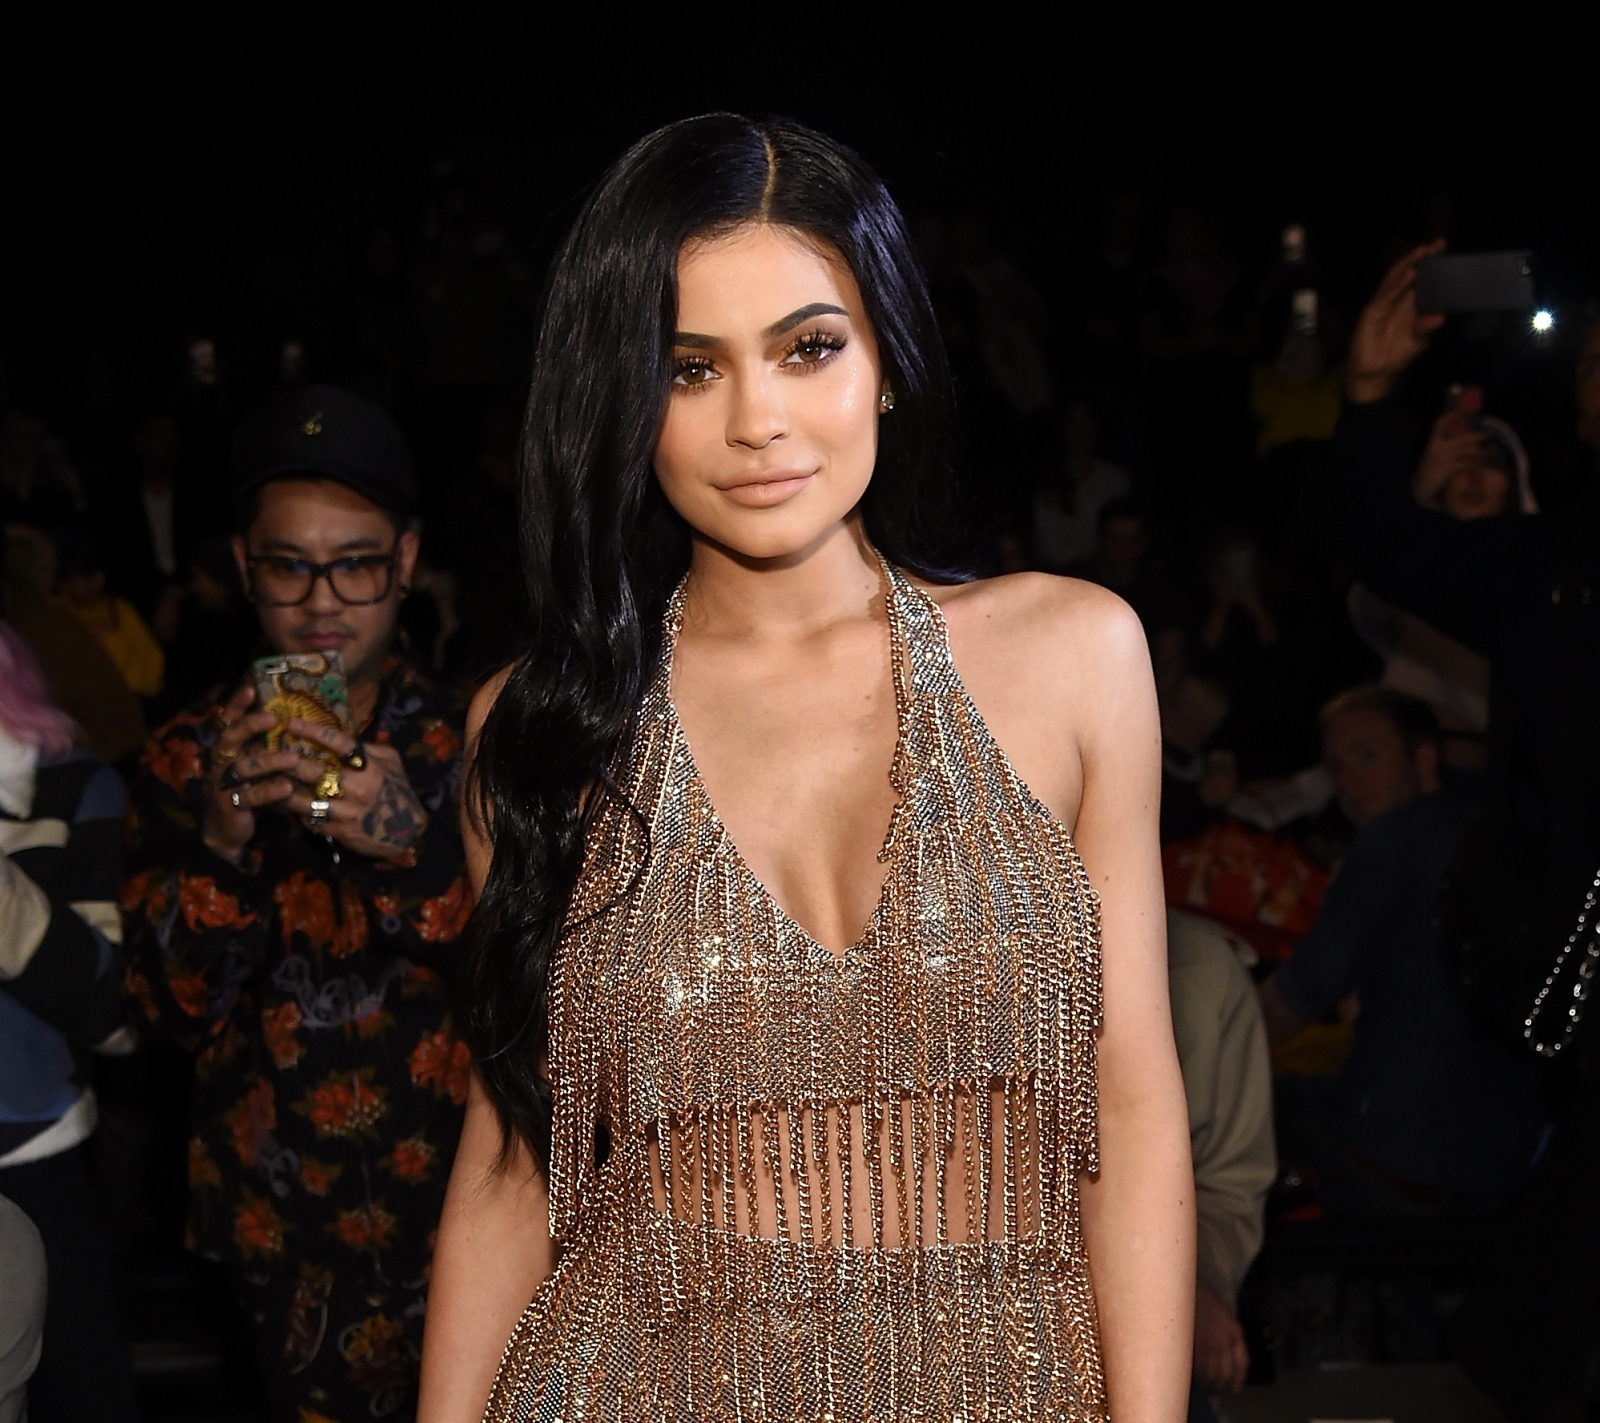 This is why Kylie Jenner was left out of the Kardashian Christmas photo